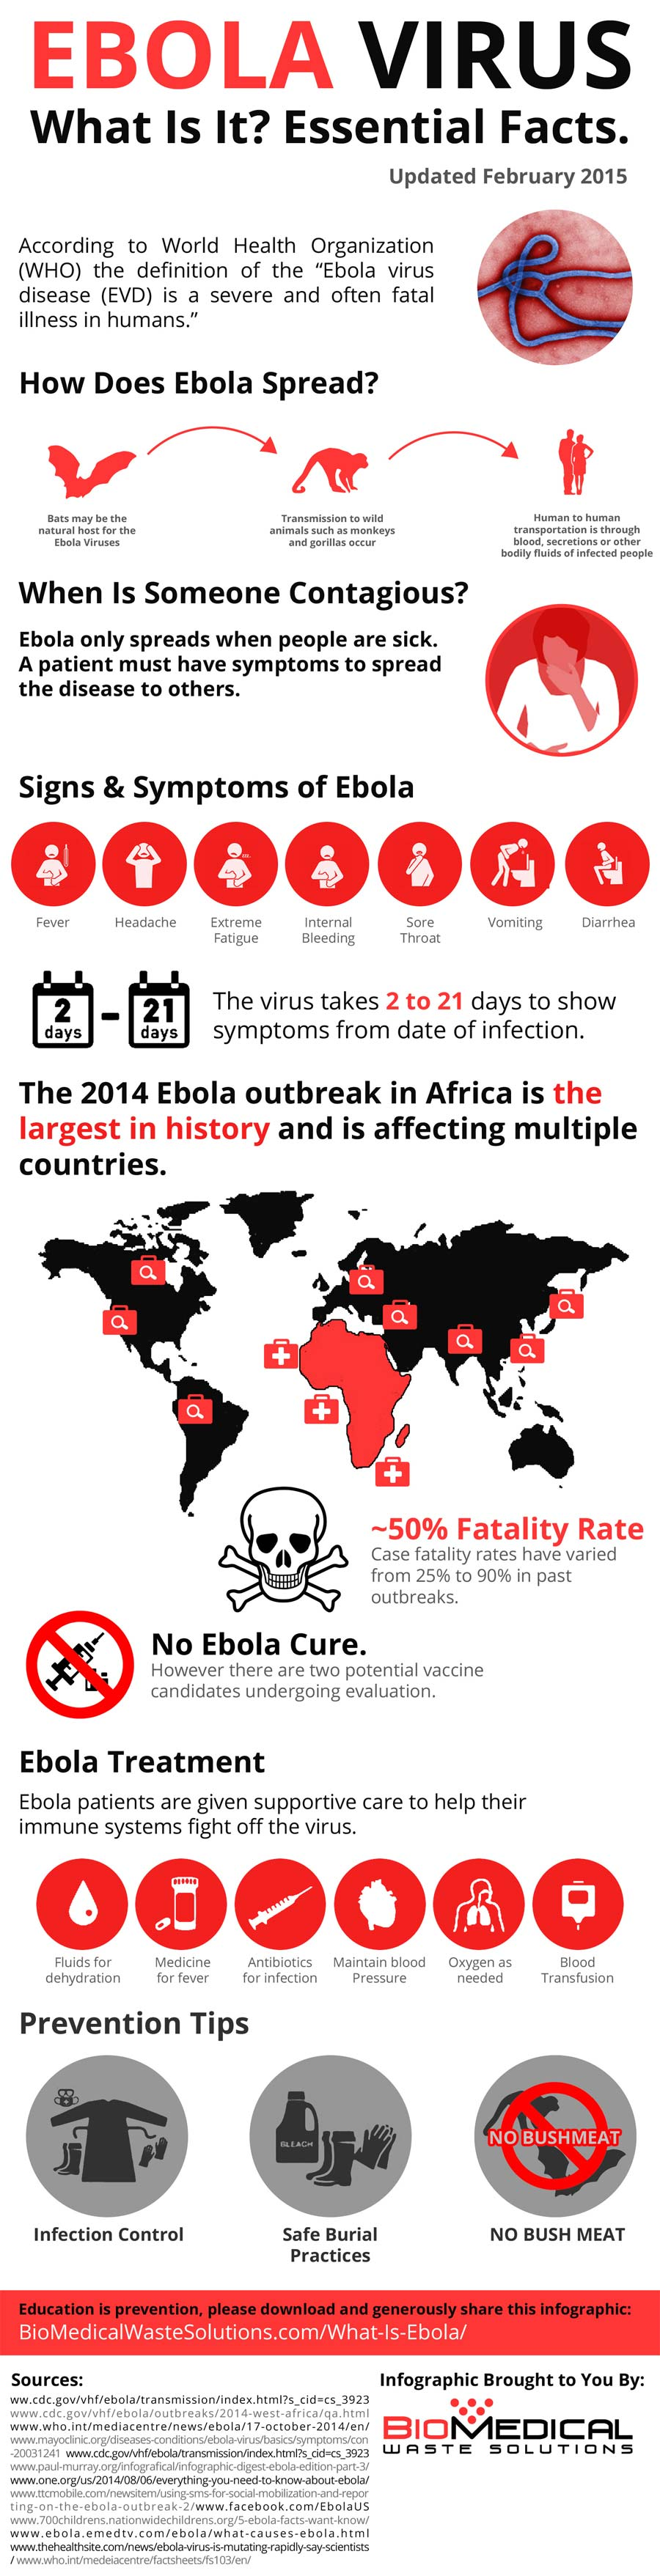 Ebola_virus_infographic_2014_image_small